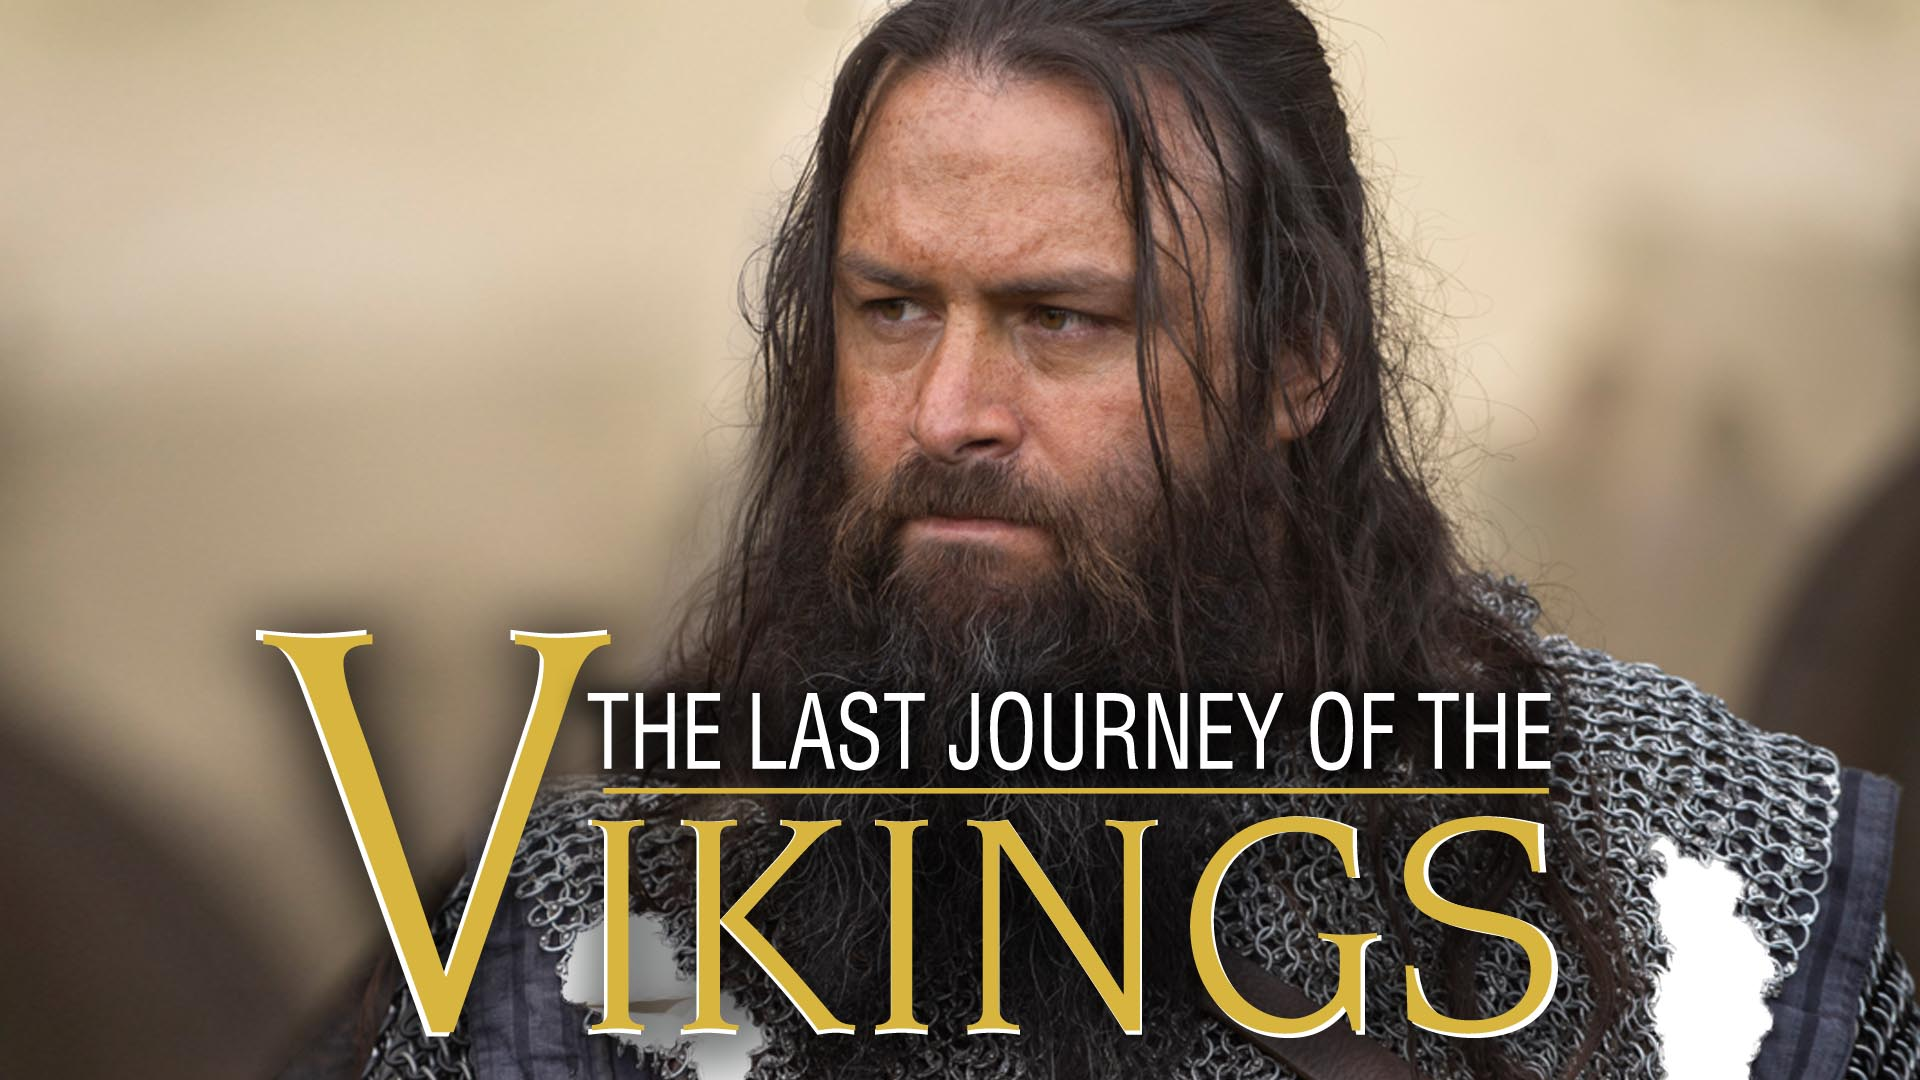 The Last Journey of the Vikings